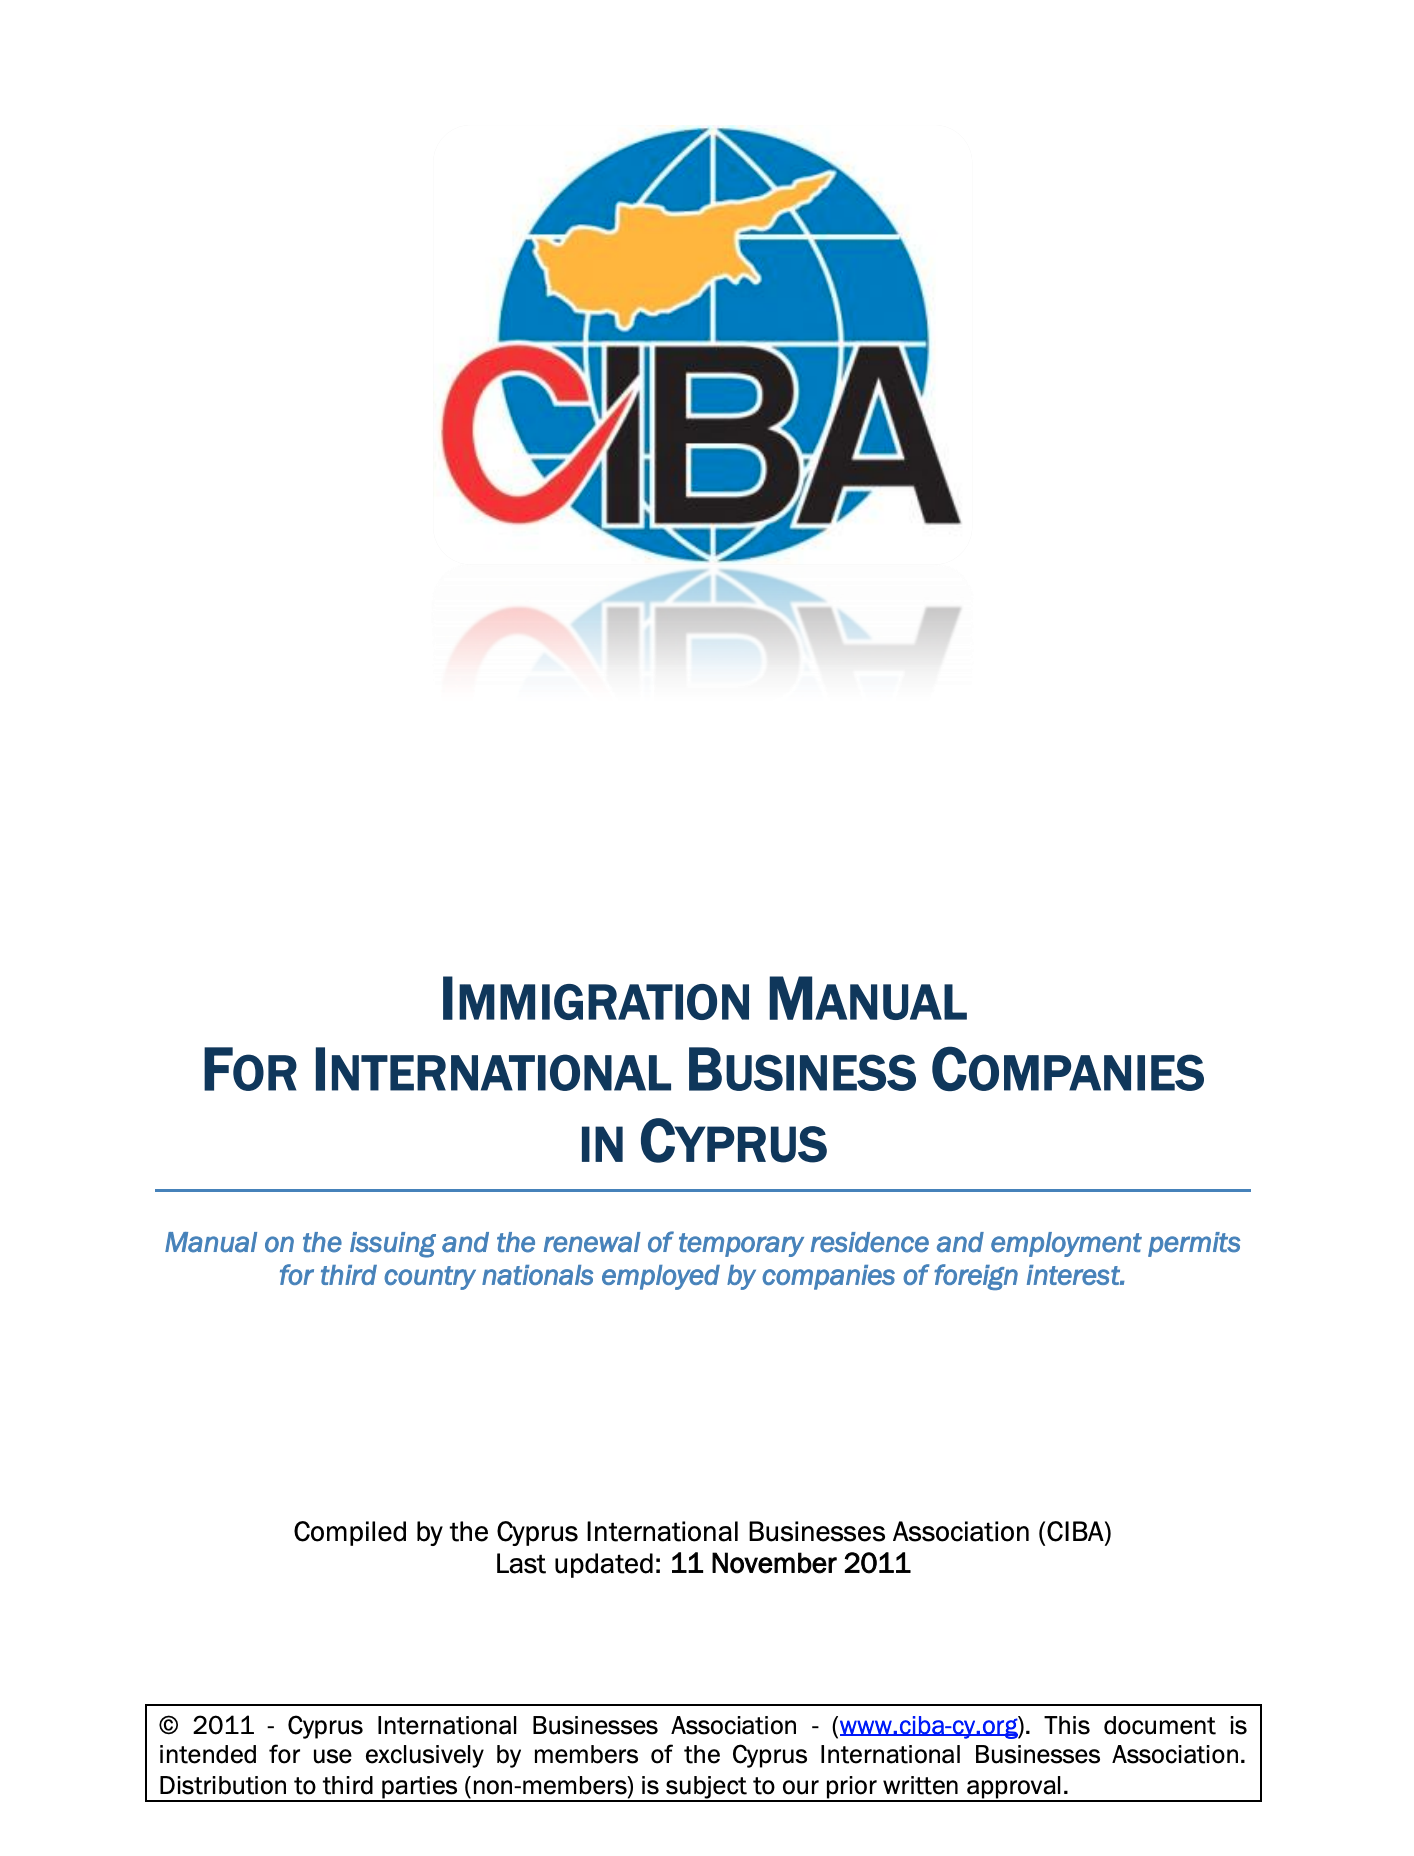 Immigration Manual for International Businesses in Cyprus